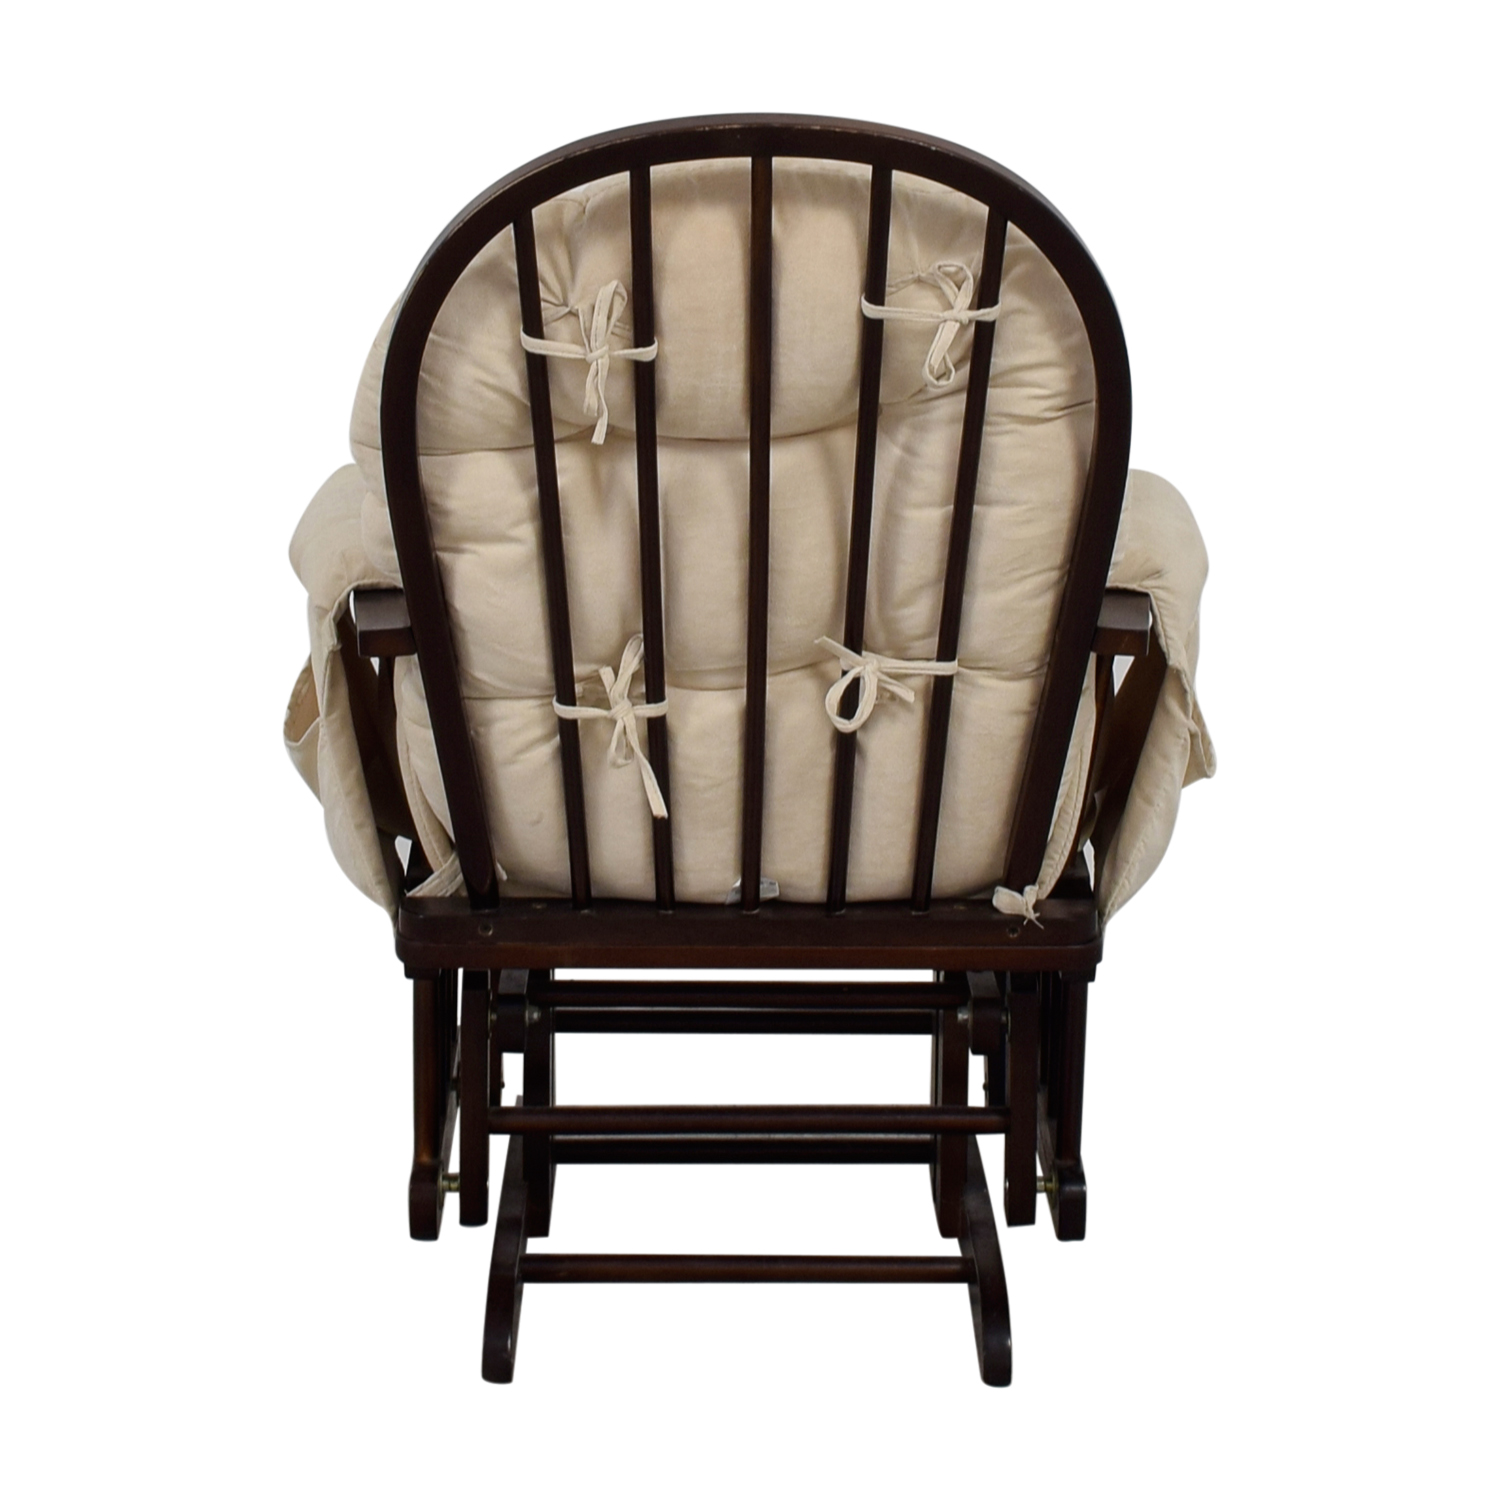 Beige and Wood Rocking Chair with Ottoman for sale